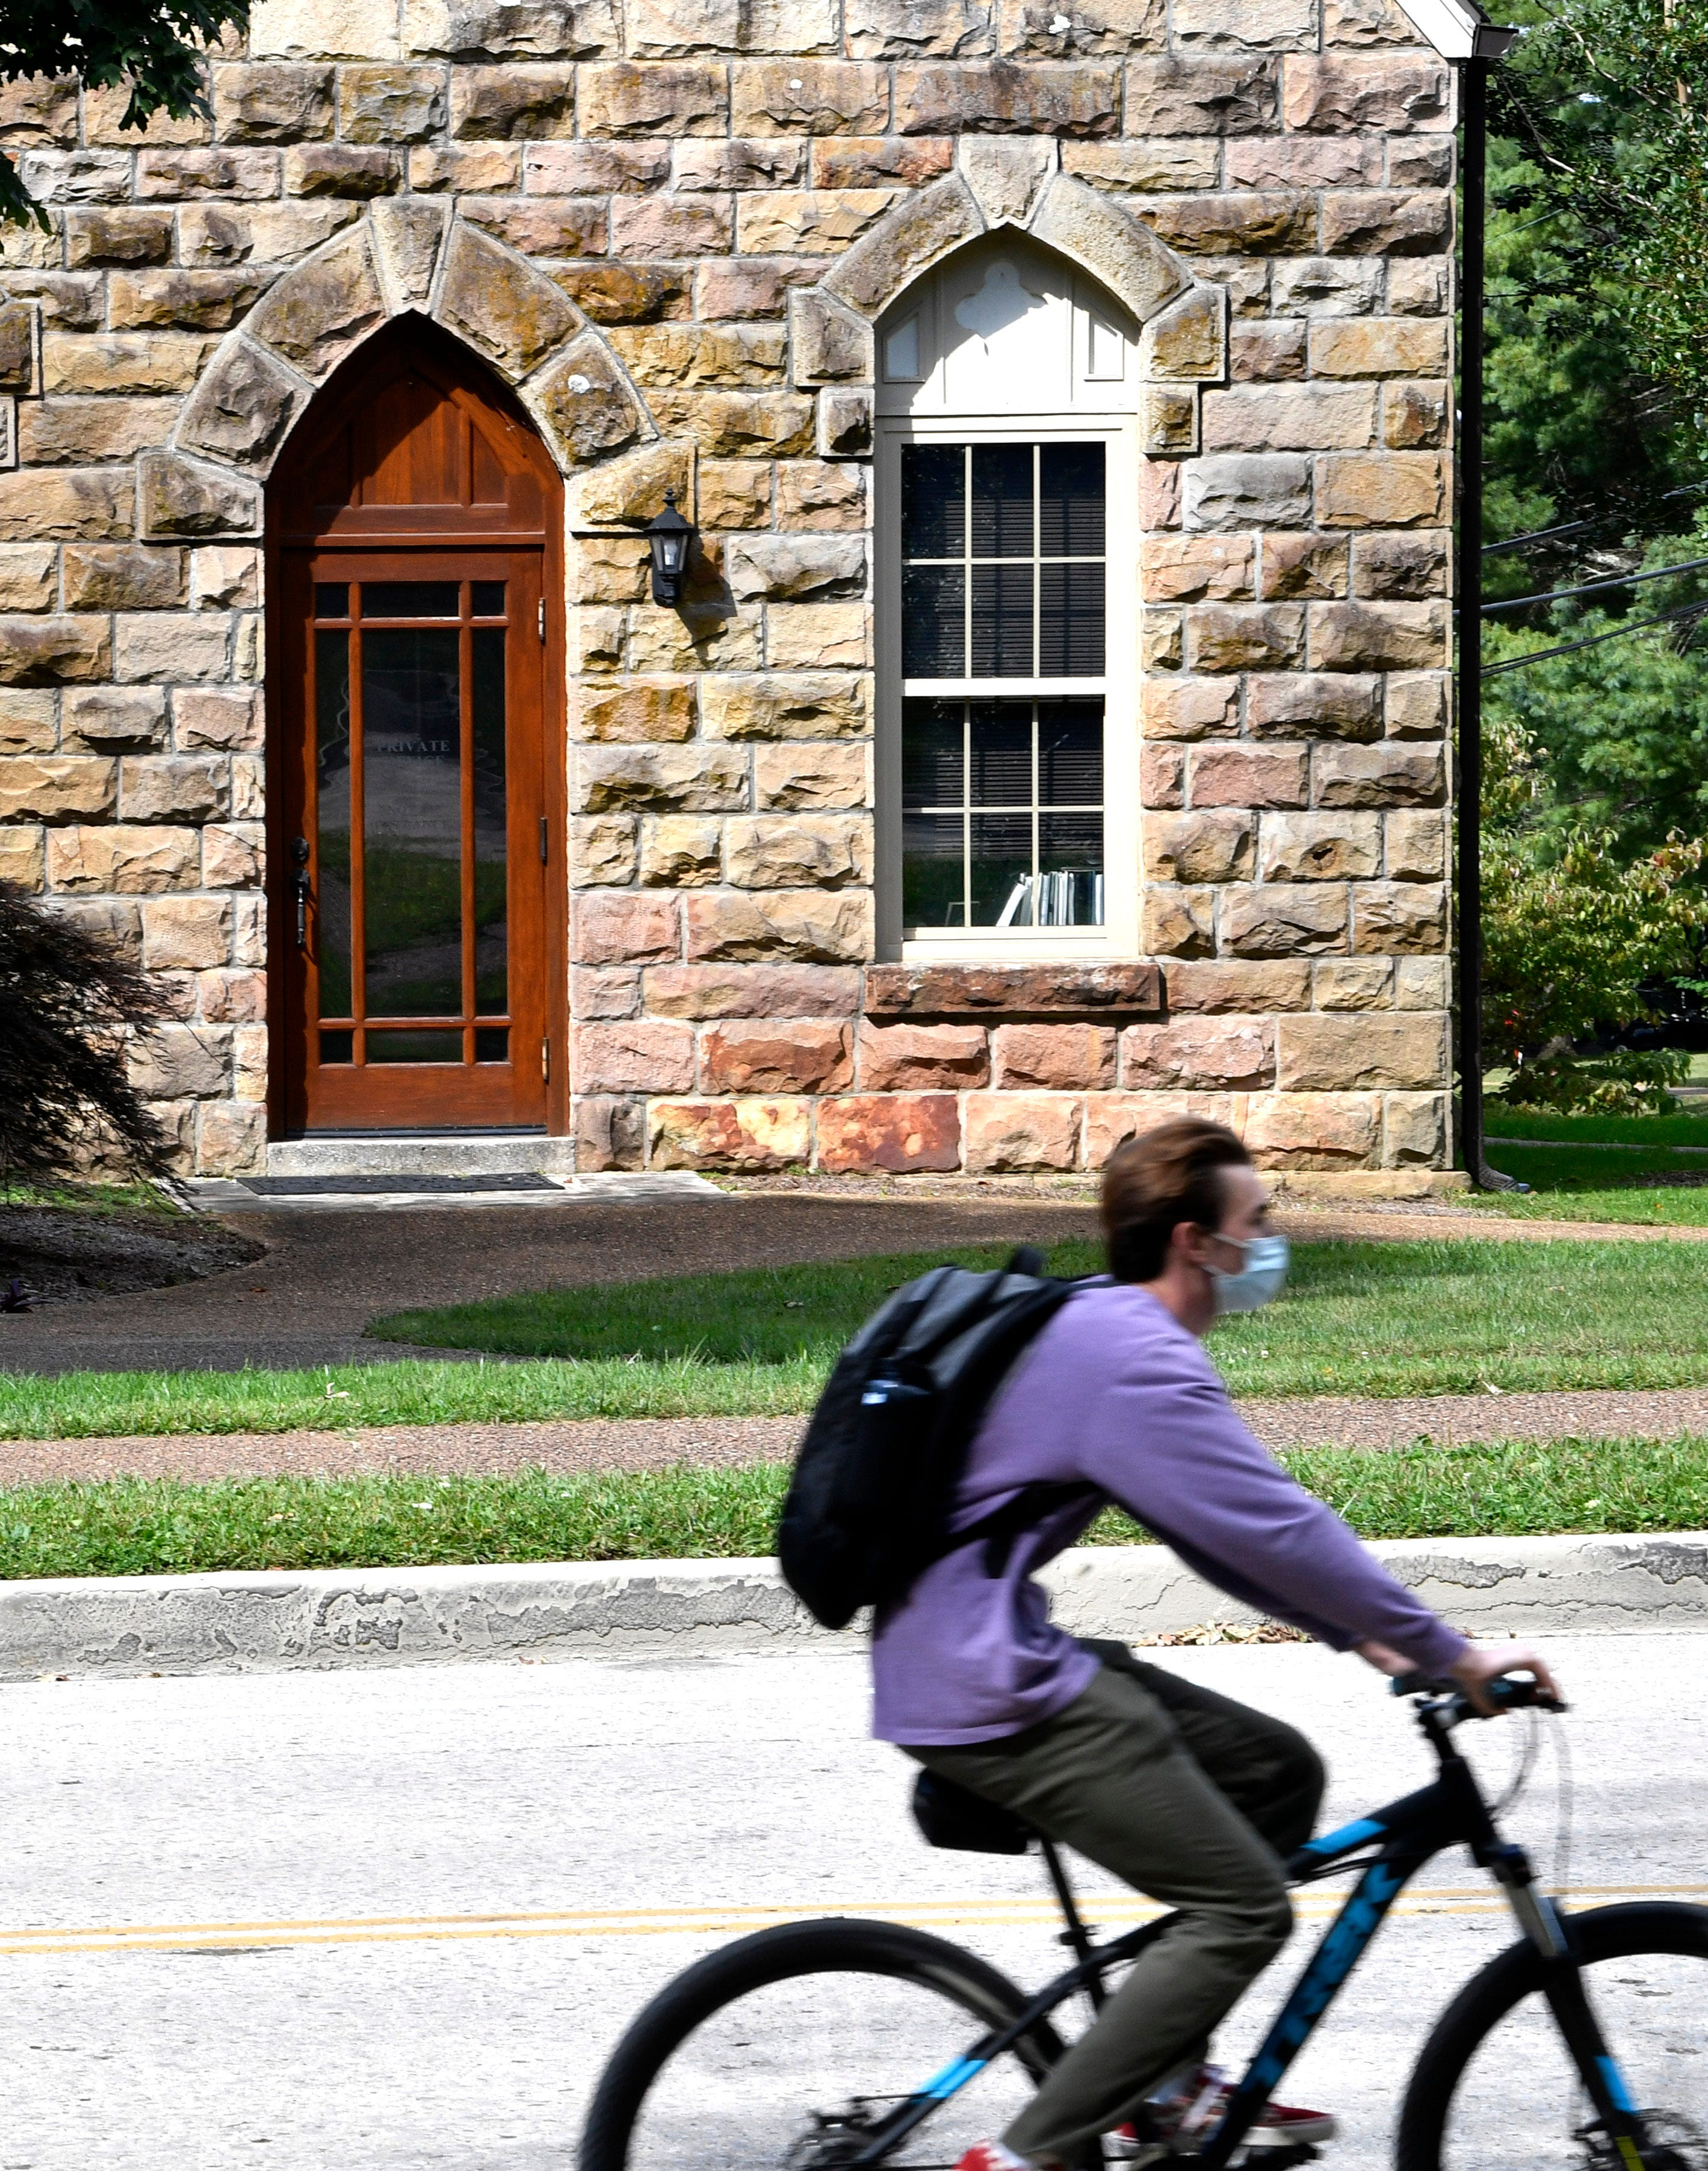 A student rides his bike past Thomson Union that was named for Jacob Thompson (1810-1885), inspector general for the Confederate States Army. Thompson was effectively the leader of the Confederate Secret Service, and is most well-known for a suspected meeting he may have had with Abraham Lincoln's assassin, John Wilkes Booth. Thompson was also a trustee of the University for twelve years. The building is already scheduled to be renamed to Biehl Commons in Sewanee, Tenn. Tuesday, Sept. 22, 2020.